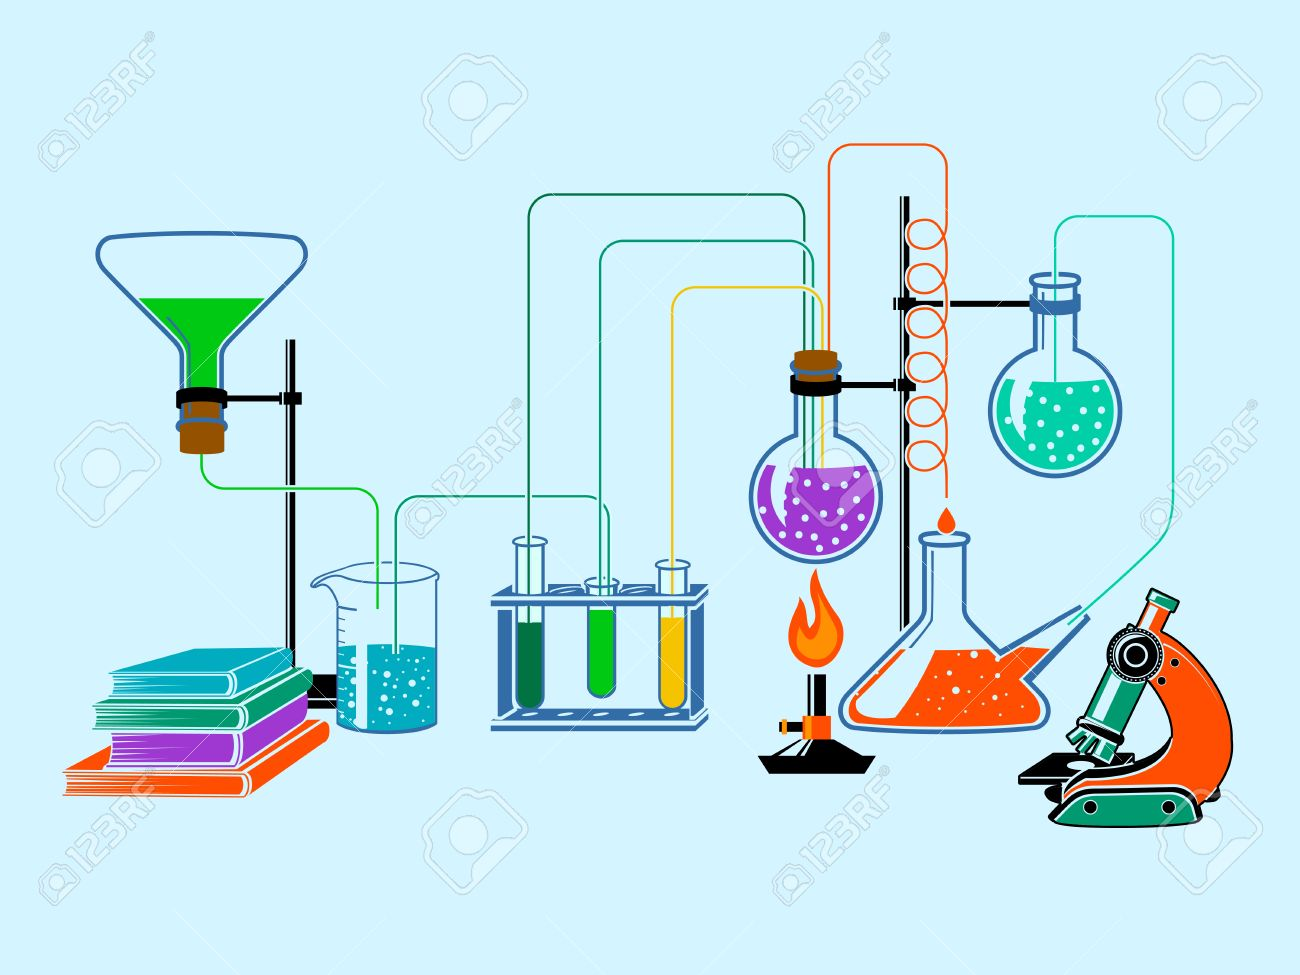 Scientific Chemistry Physics Research Education Laboratory Equipment Flat Design Elements Background Vector Illustration Stock